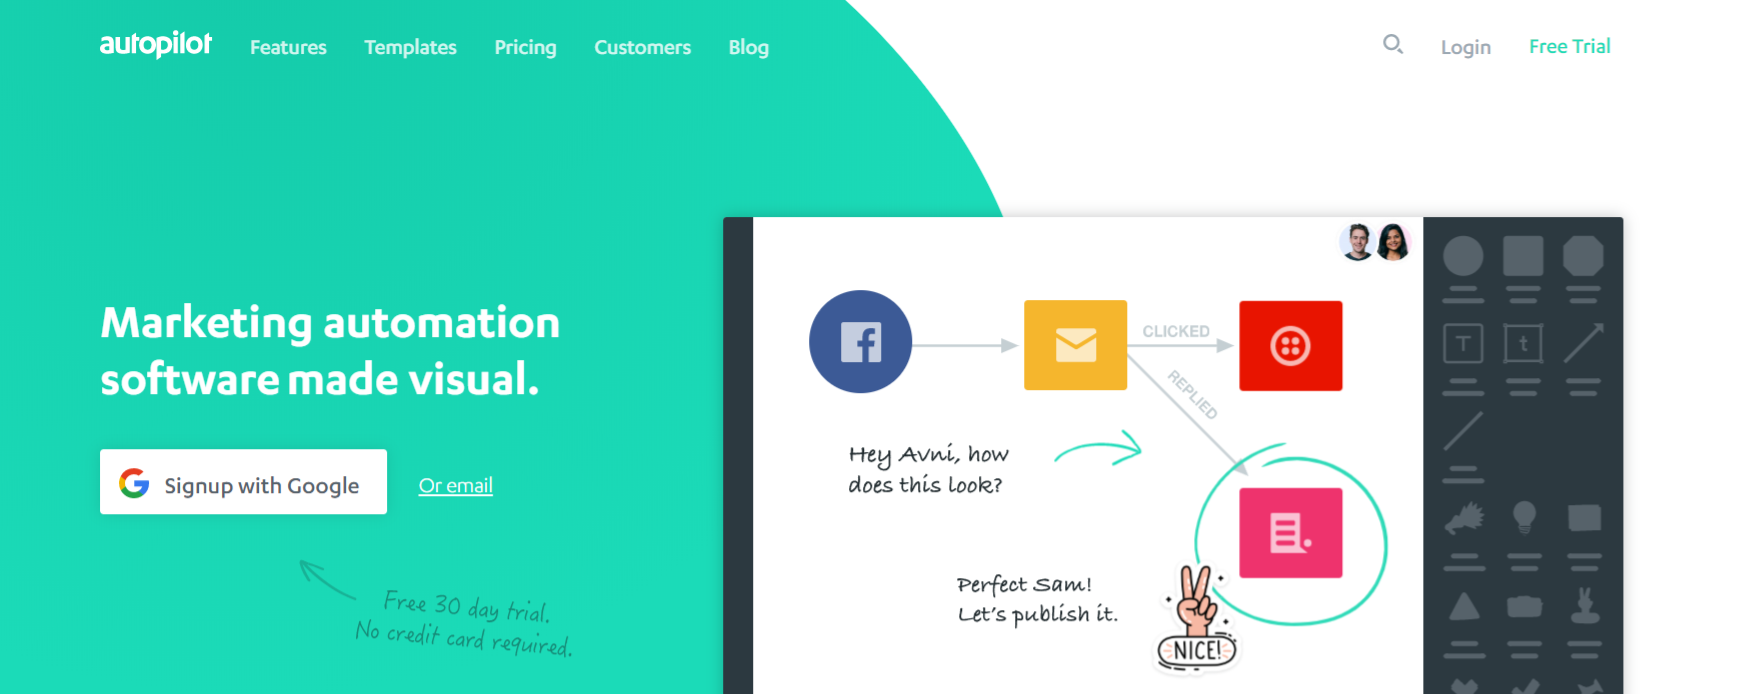 Autopilot: Online marketing automation tool